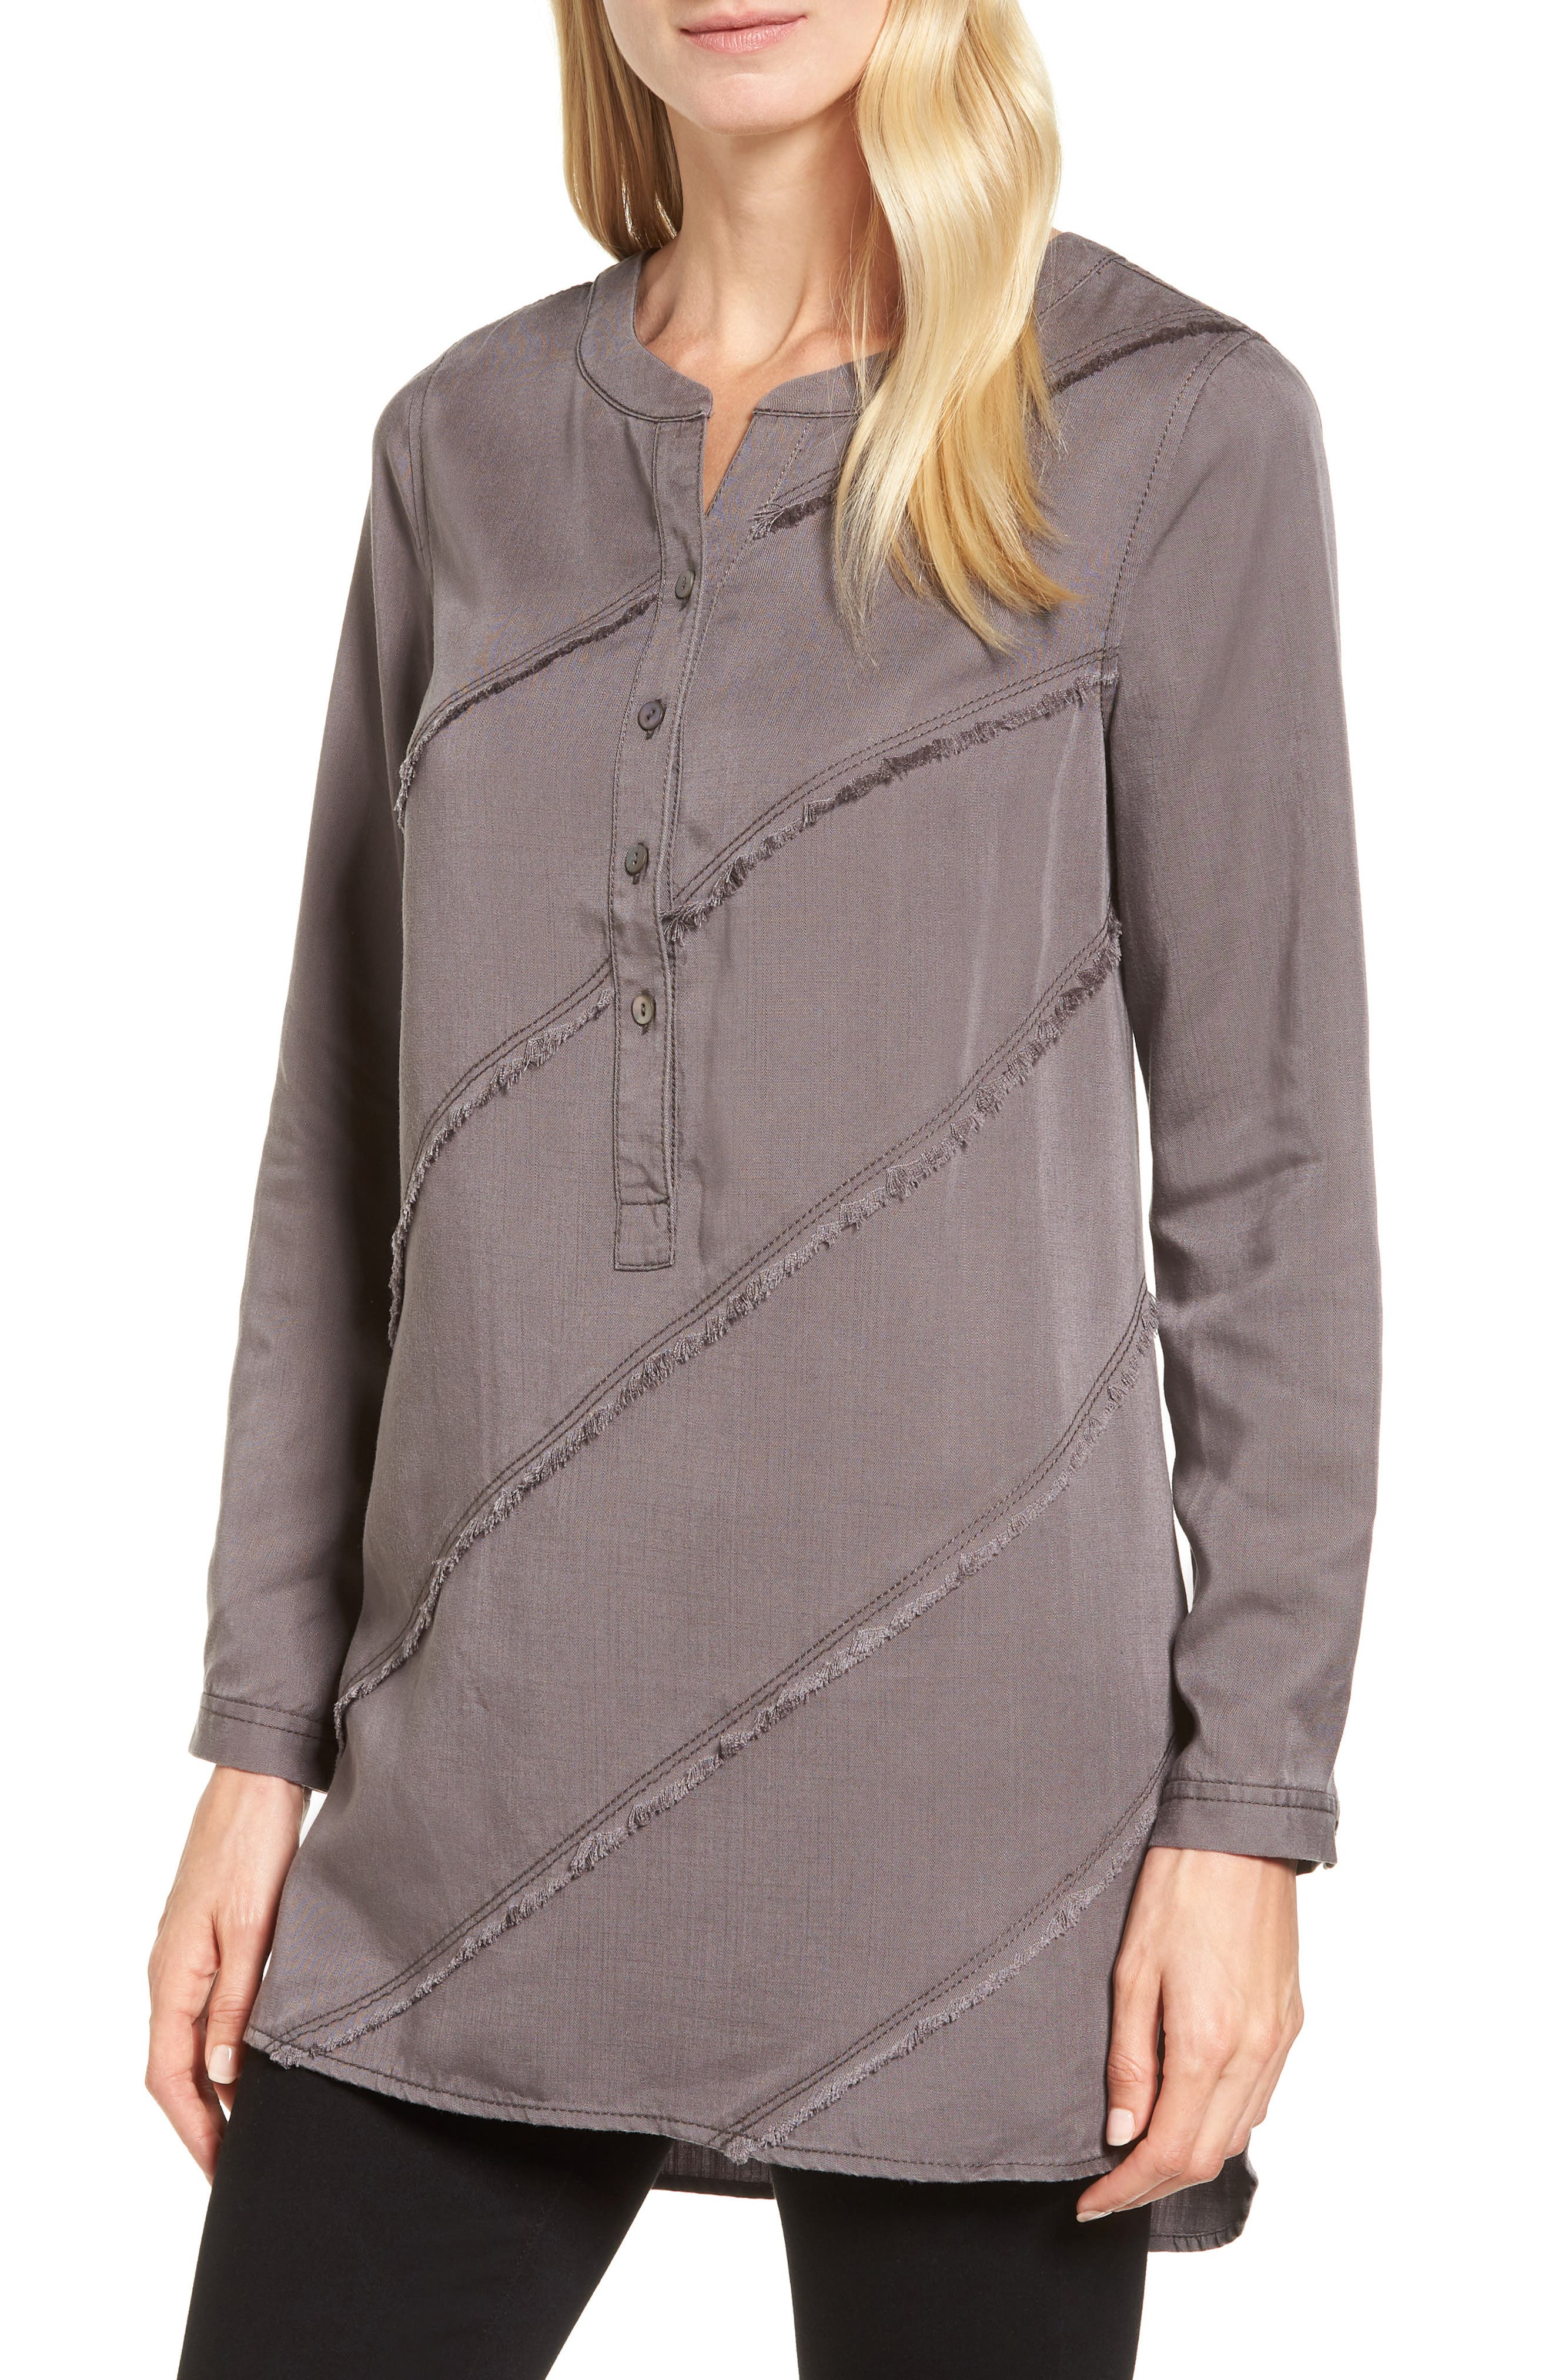 Tranquil Tunic Top,                             Main thumbnail 1, color,                             Warm Grey